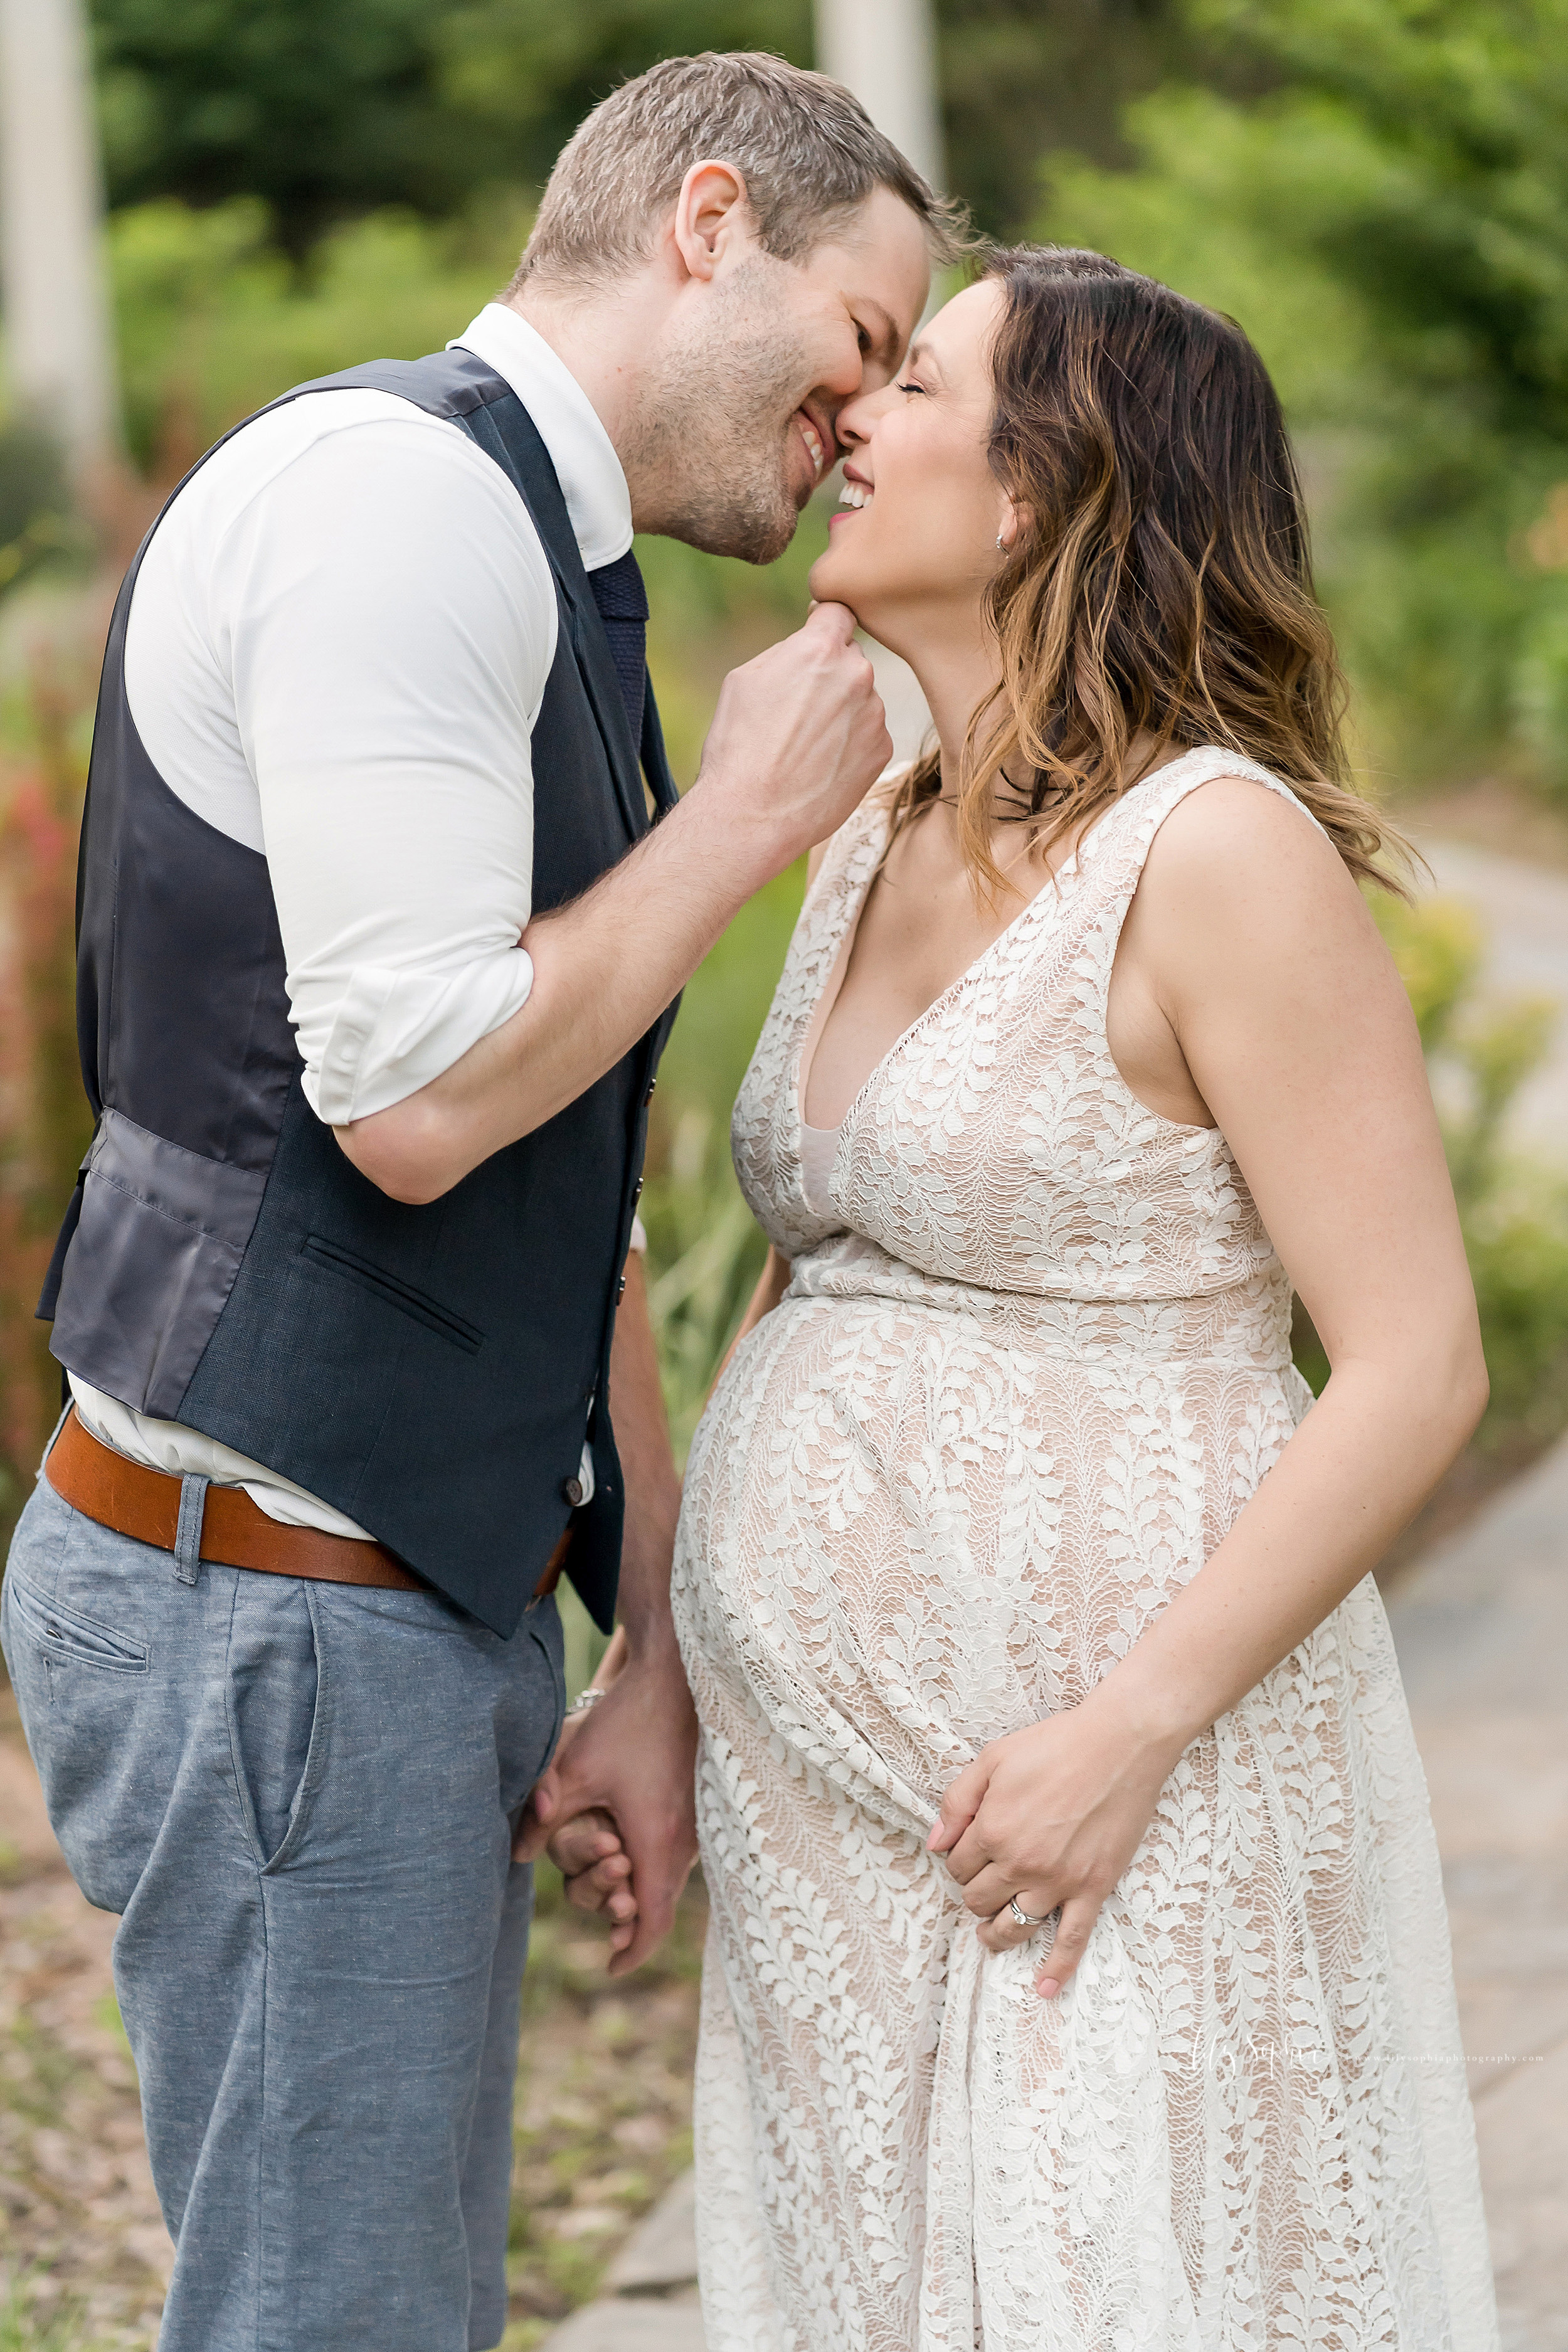 Maternity photo of a smiling husband and wife ready to kiss one another in a garden in Atlanta.